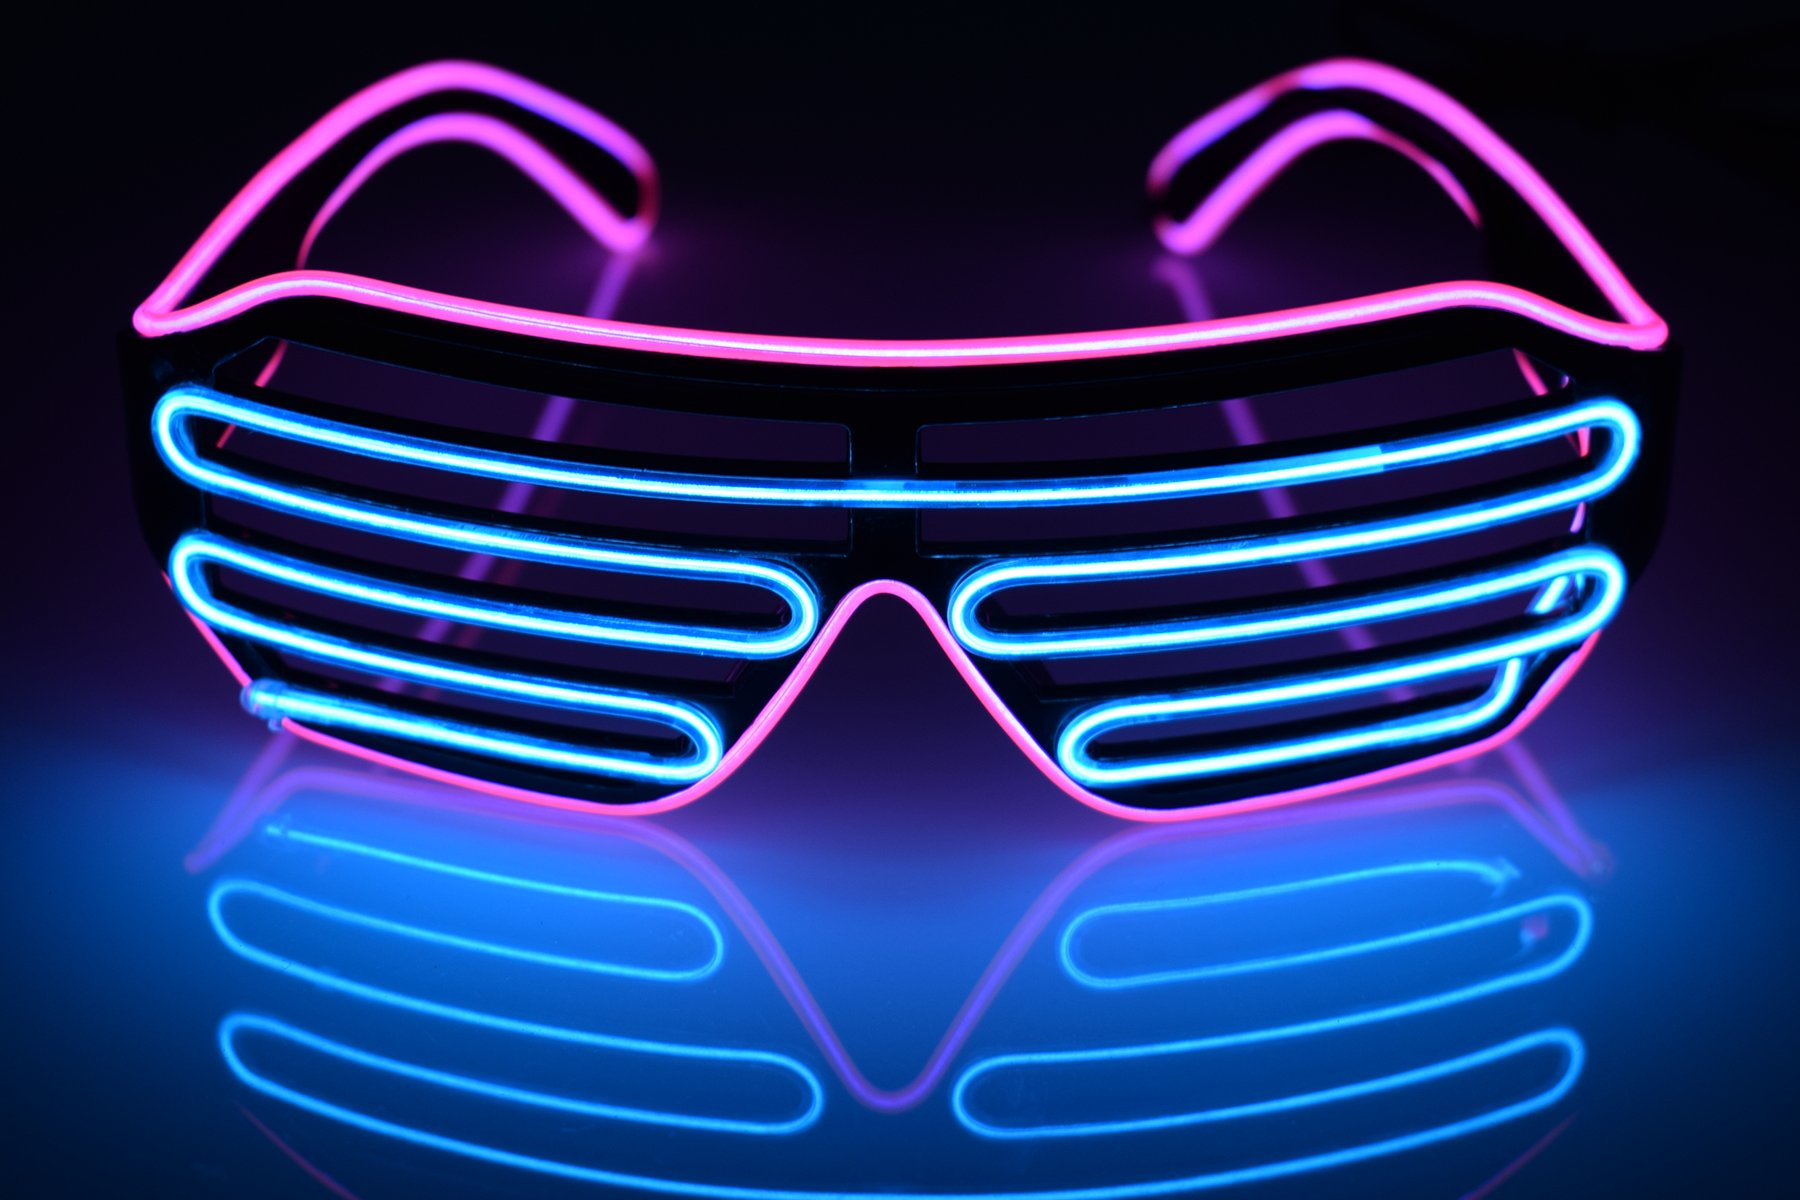 LED Flash Light Up Blinds Glasses for Kids and Adults in Party Games Activities Halloween, Christmas Gifts (Purple-Blue)